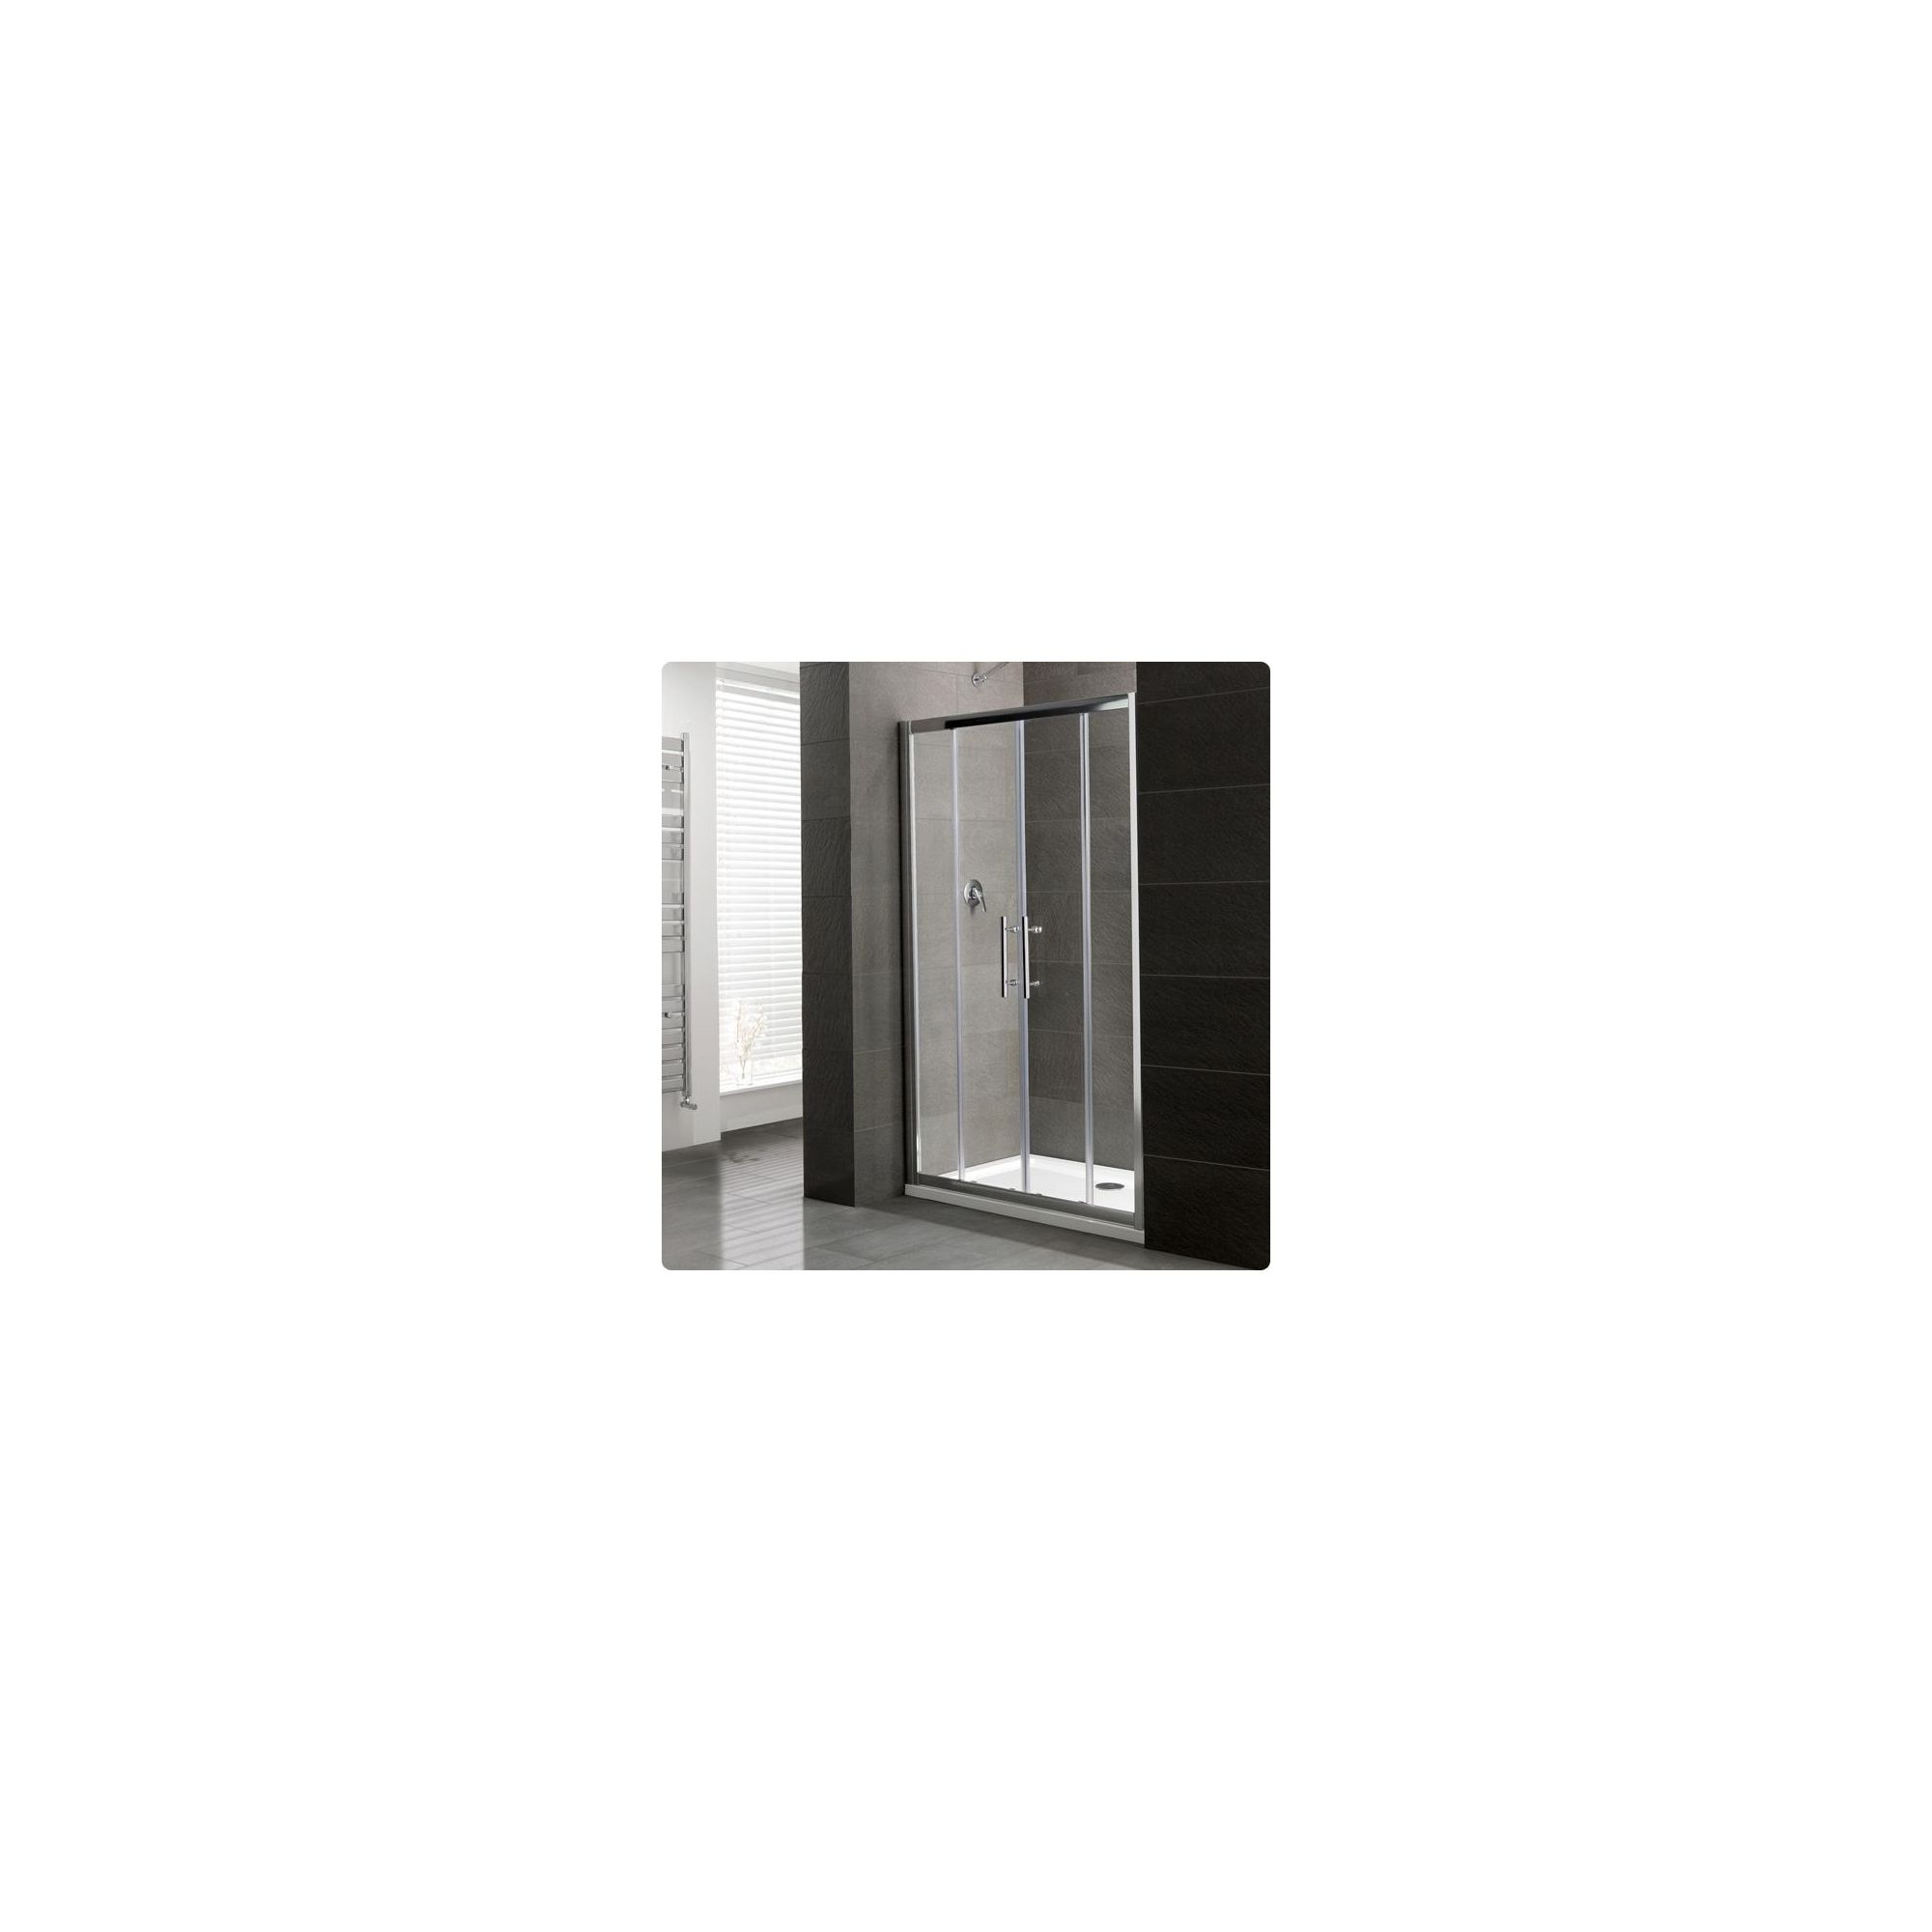 Duchy Select Silver Double Sliding Door Shower Enclosure, 1500mm x 700mm, Standard Tray, 6mm Glass at Tesco Direct